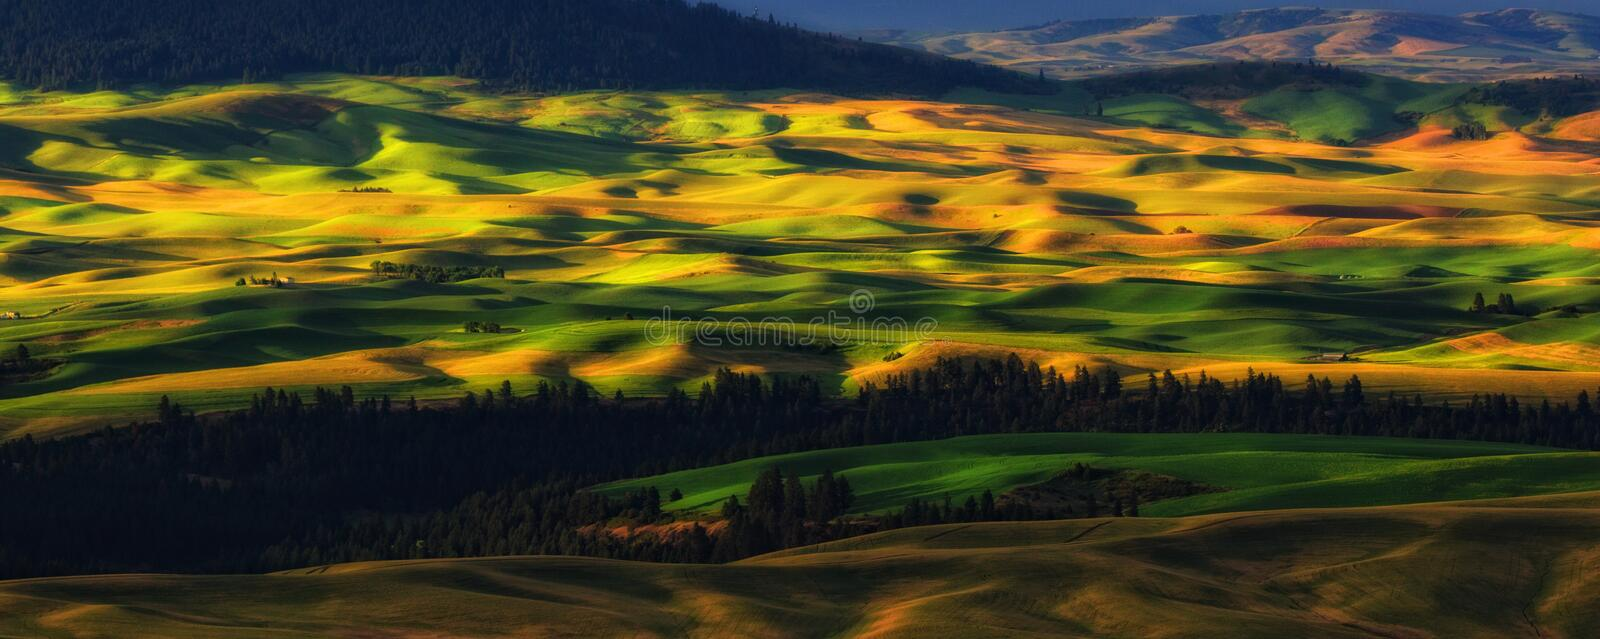 Palouse, Washington State fotografia stock